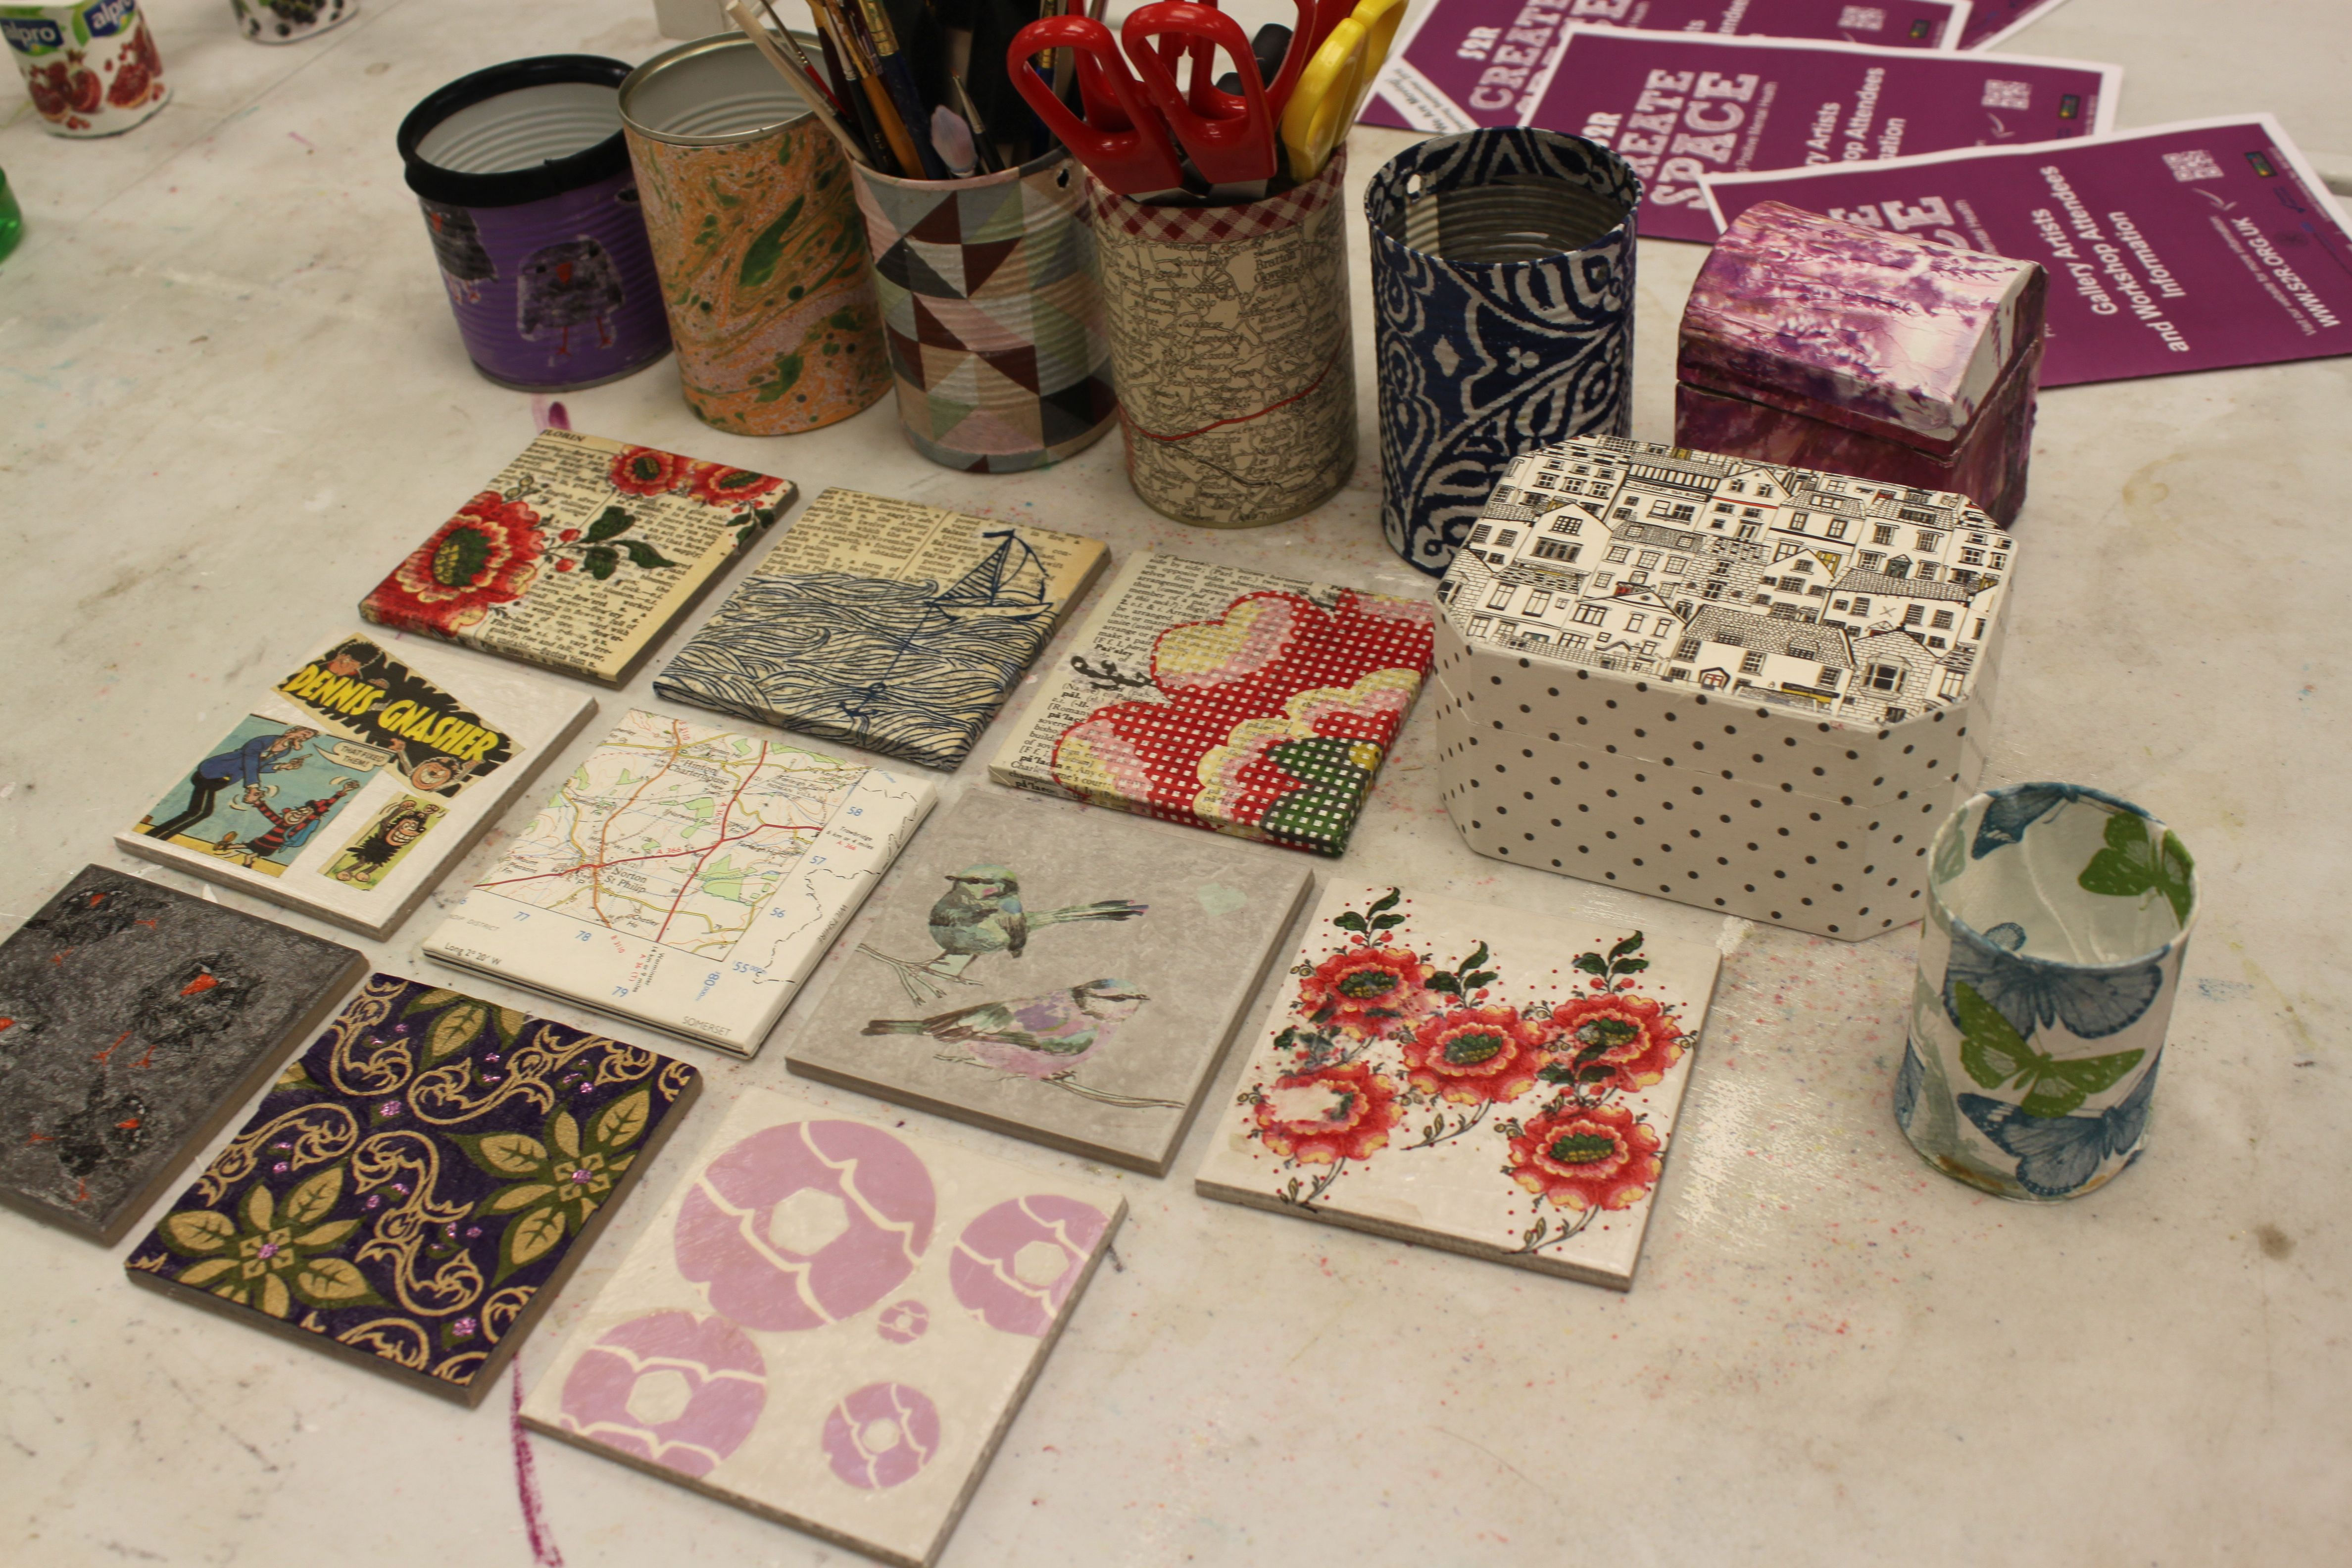 Decoupage examples at S2R, Huddersfield